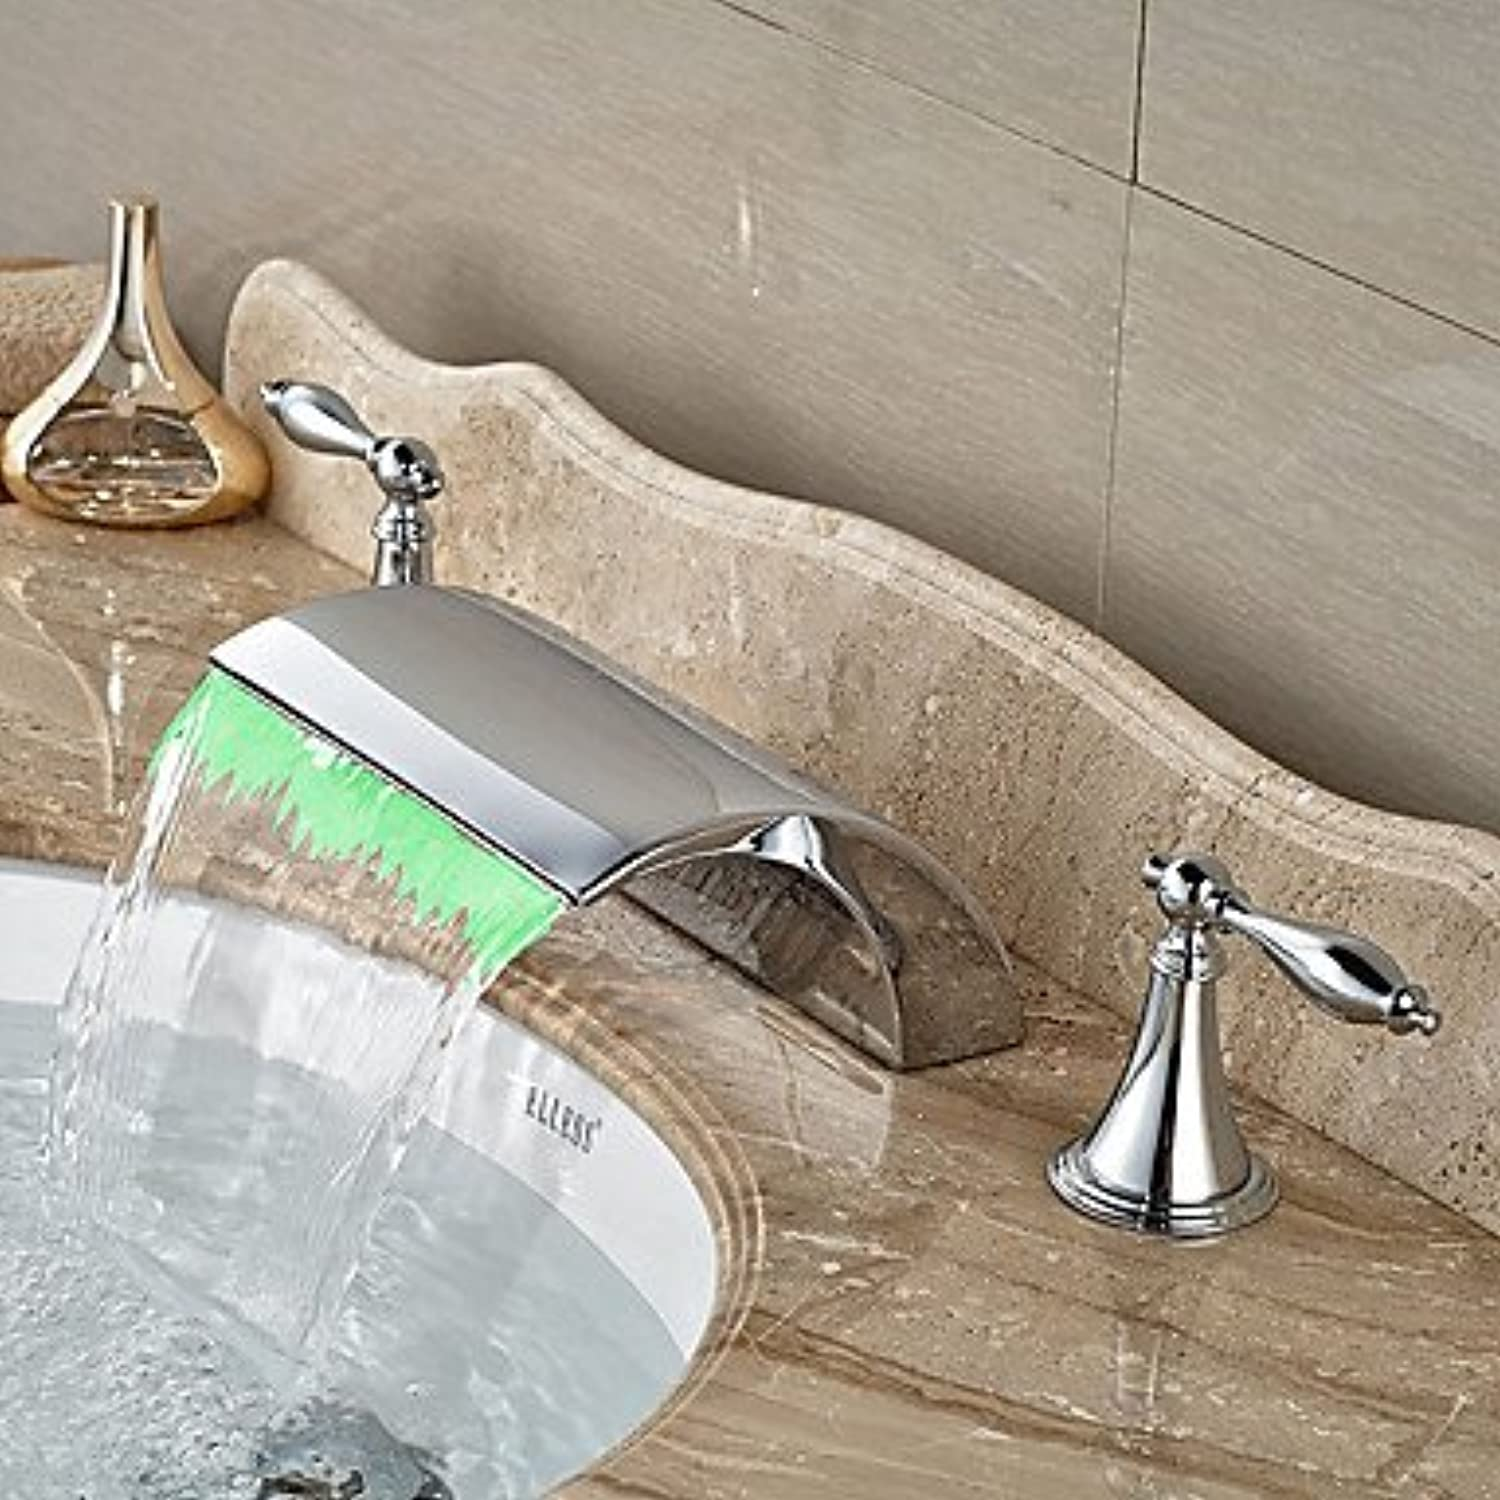 SUNNY KEY-Bathroom Sink Taps@?ìContemporary   Art Deco Retro   Modern Widespread LED   Waterfall   Widespread with Ceramic Valve Two Handles Three Holes